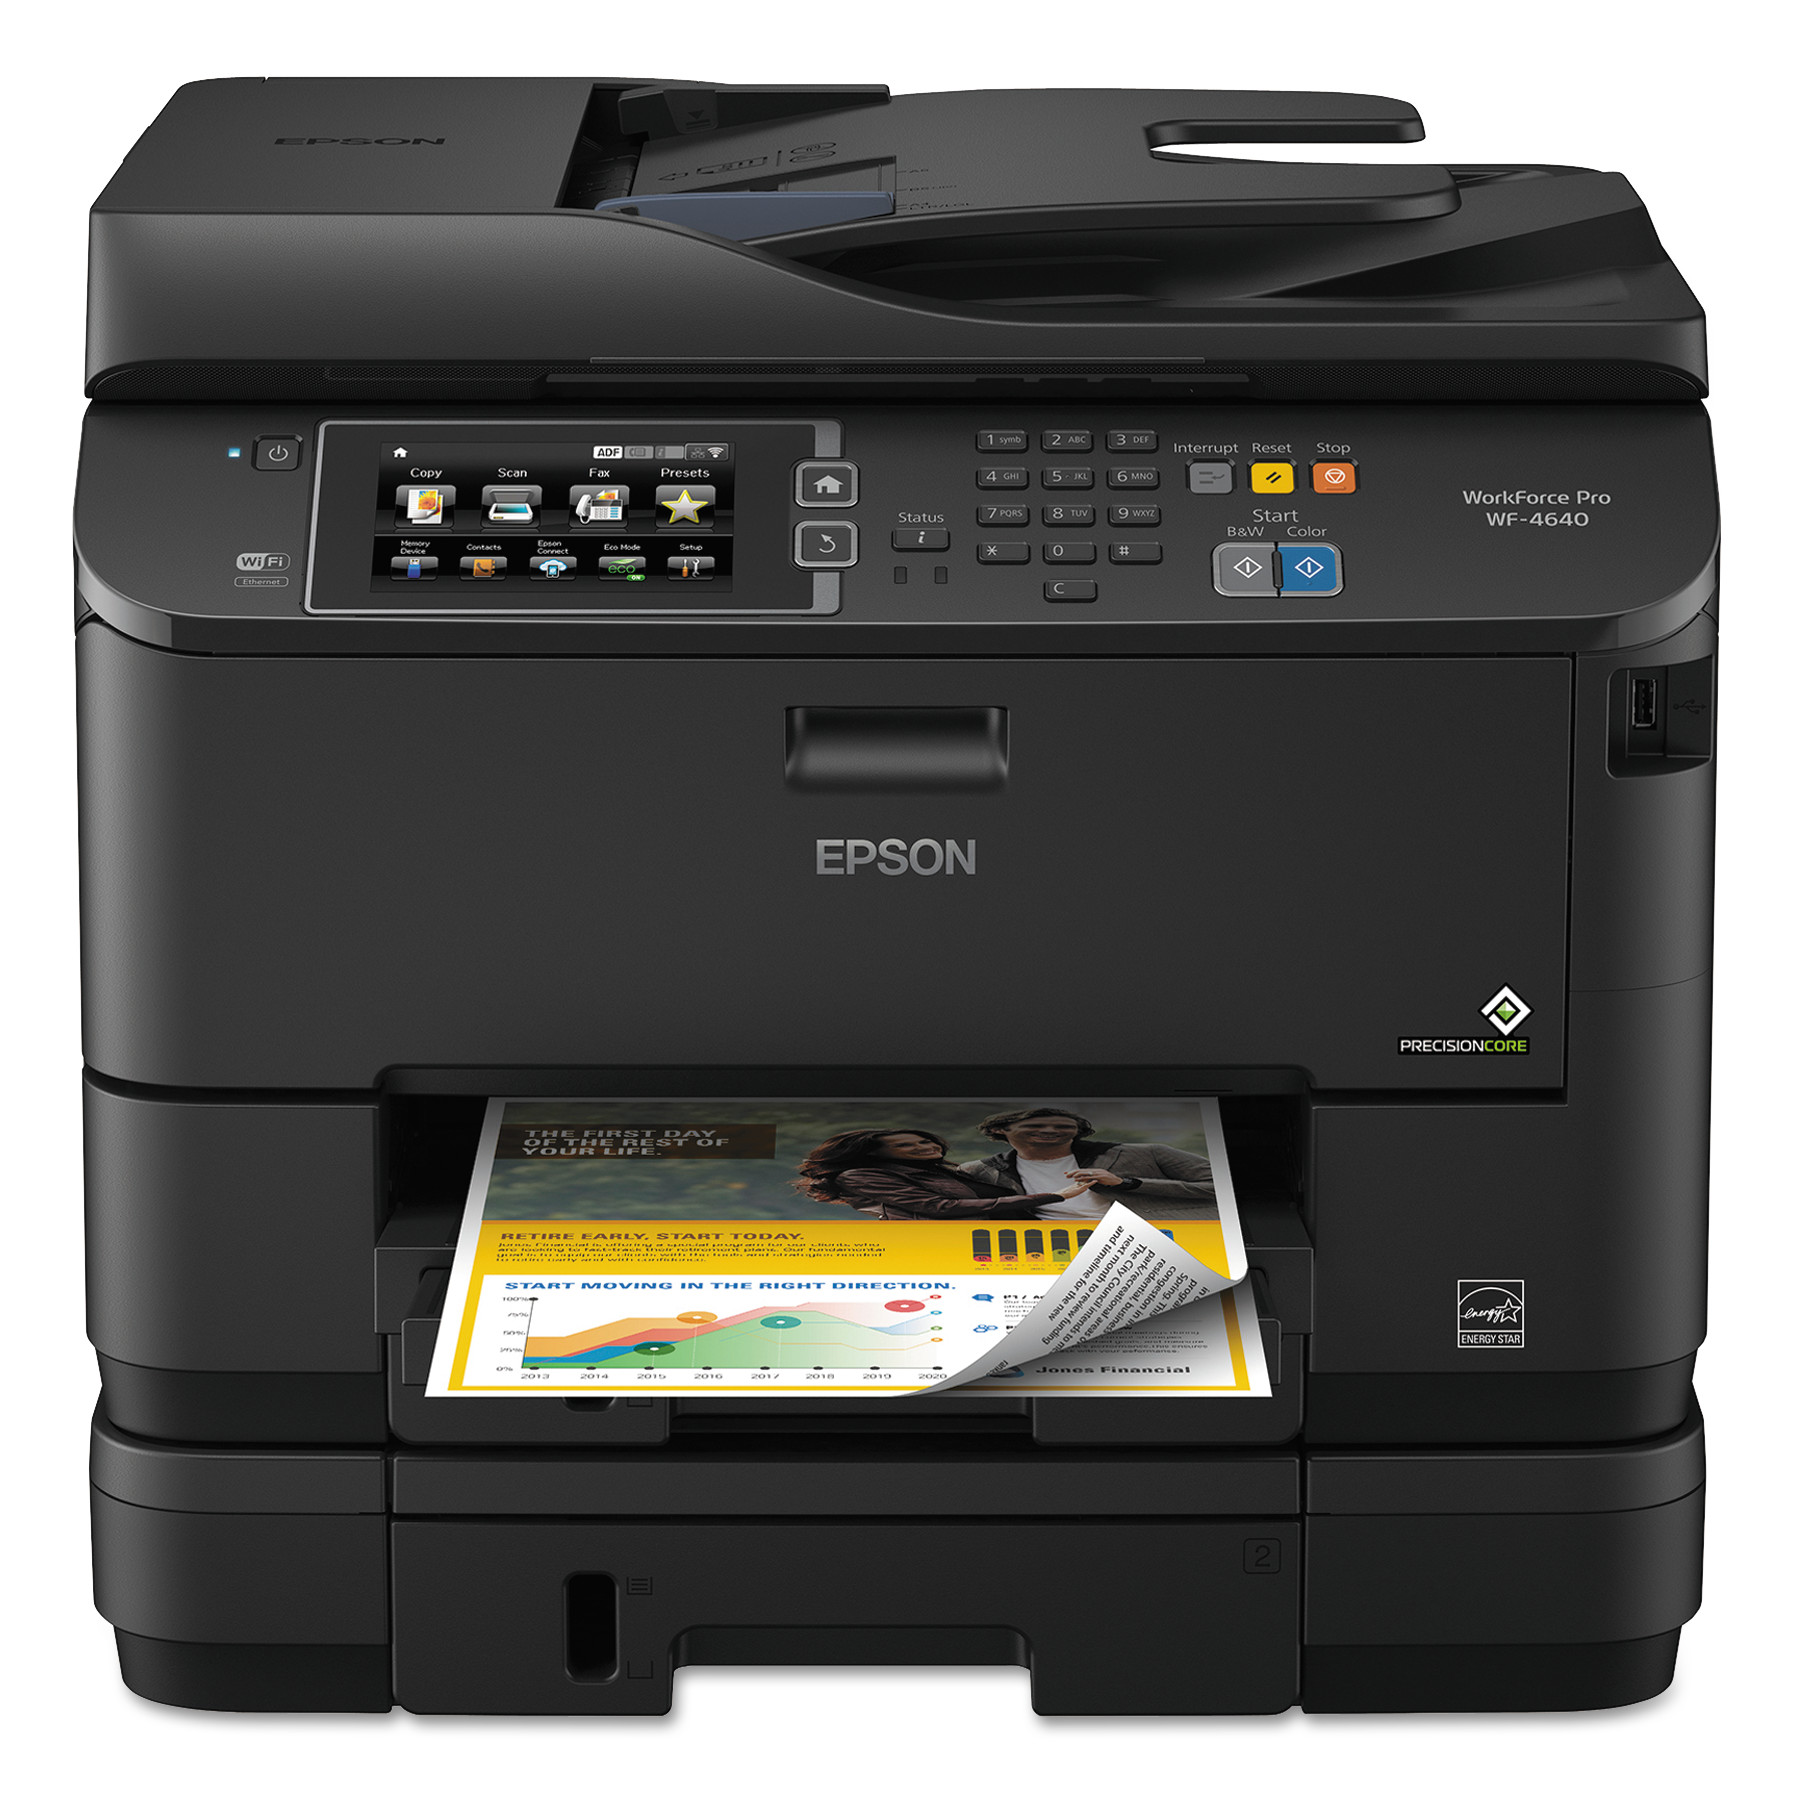 Epson WorkForce Pro WF-4640 All-in-One Printer Copier Scanner Fax Machine by EPSON AMERICA, INC.